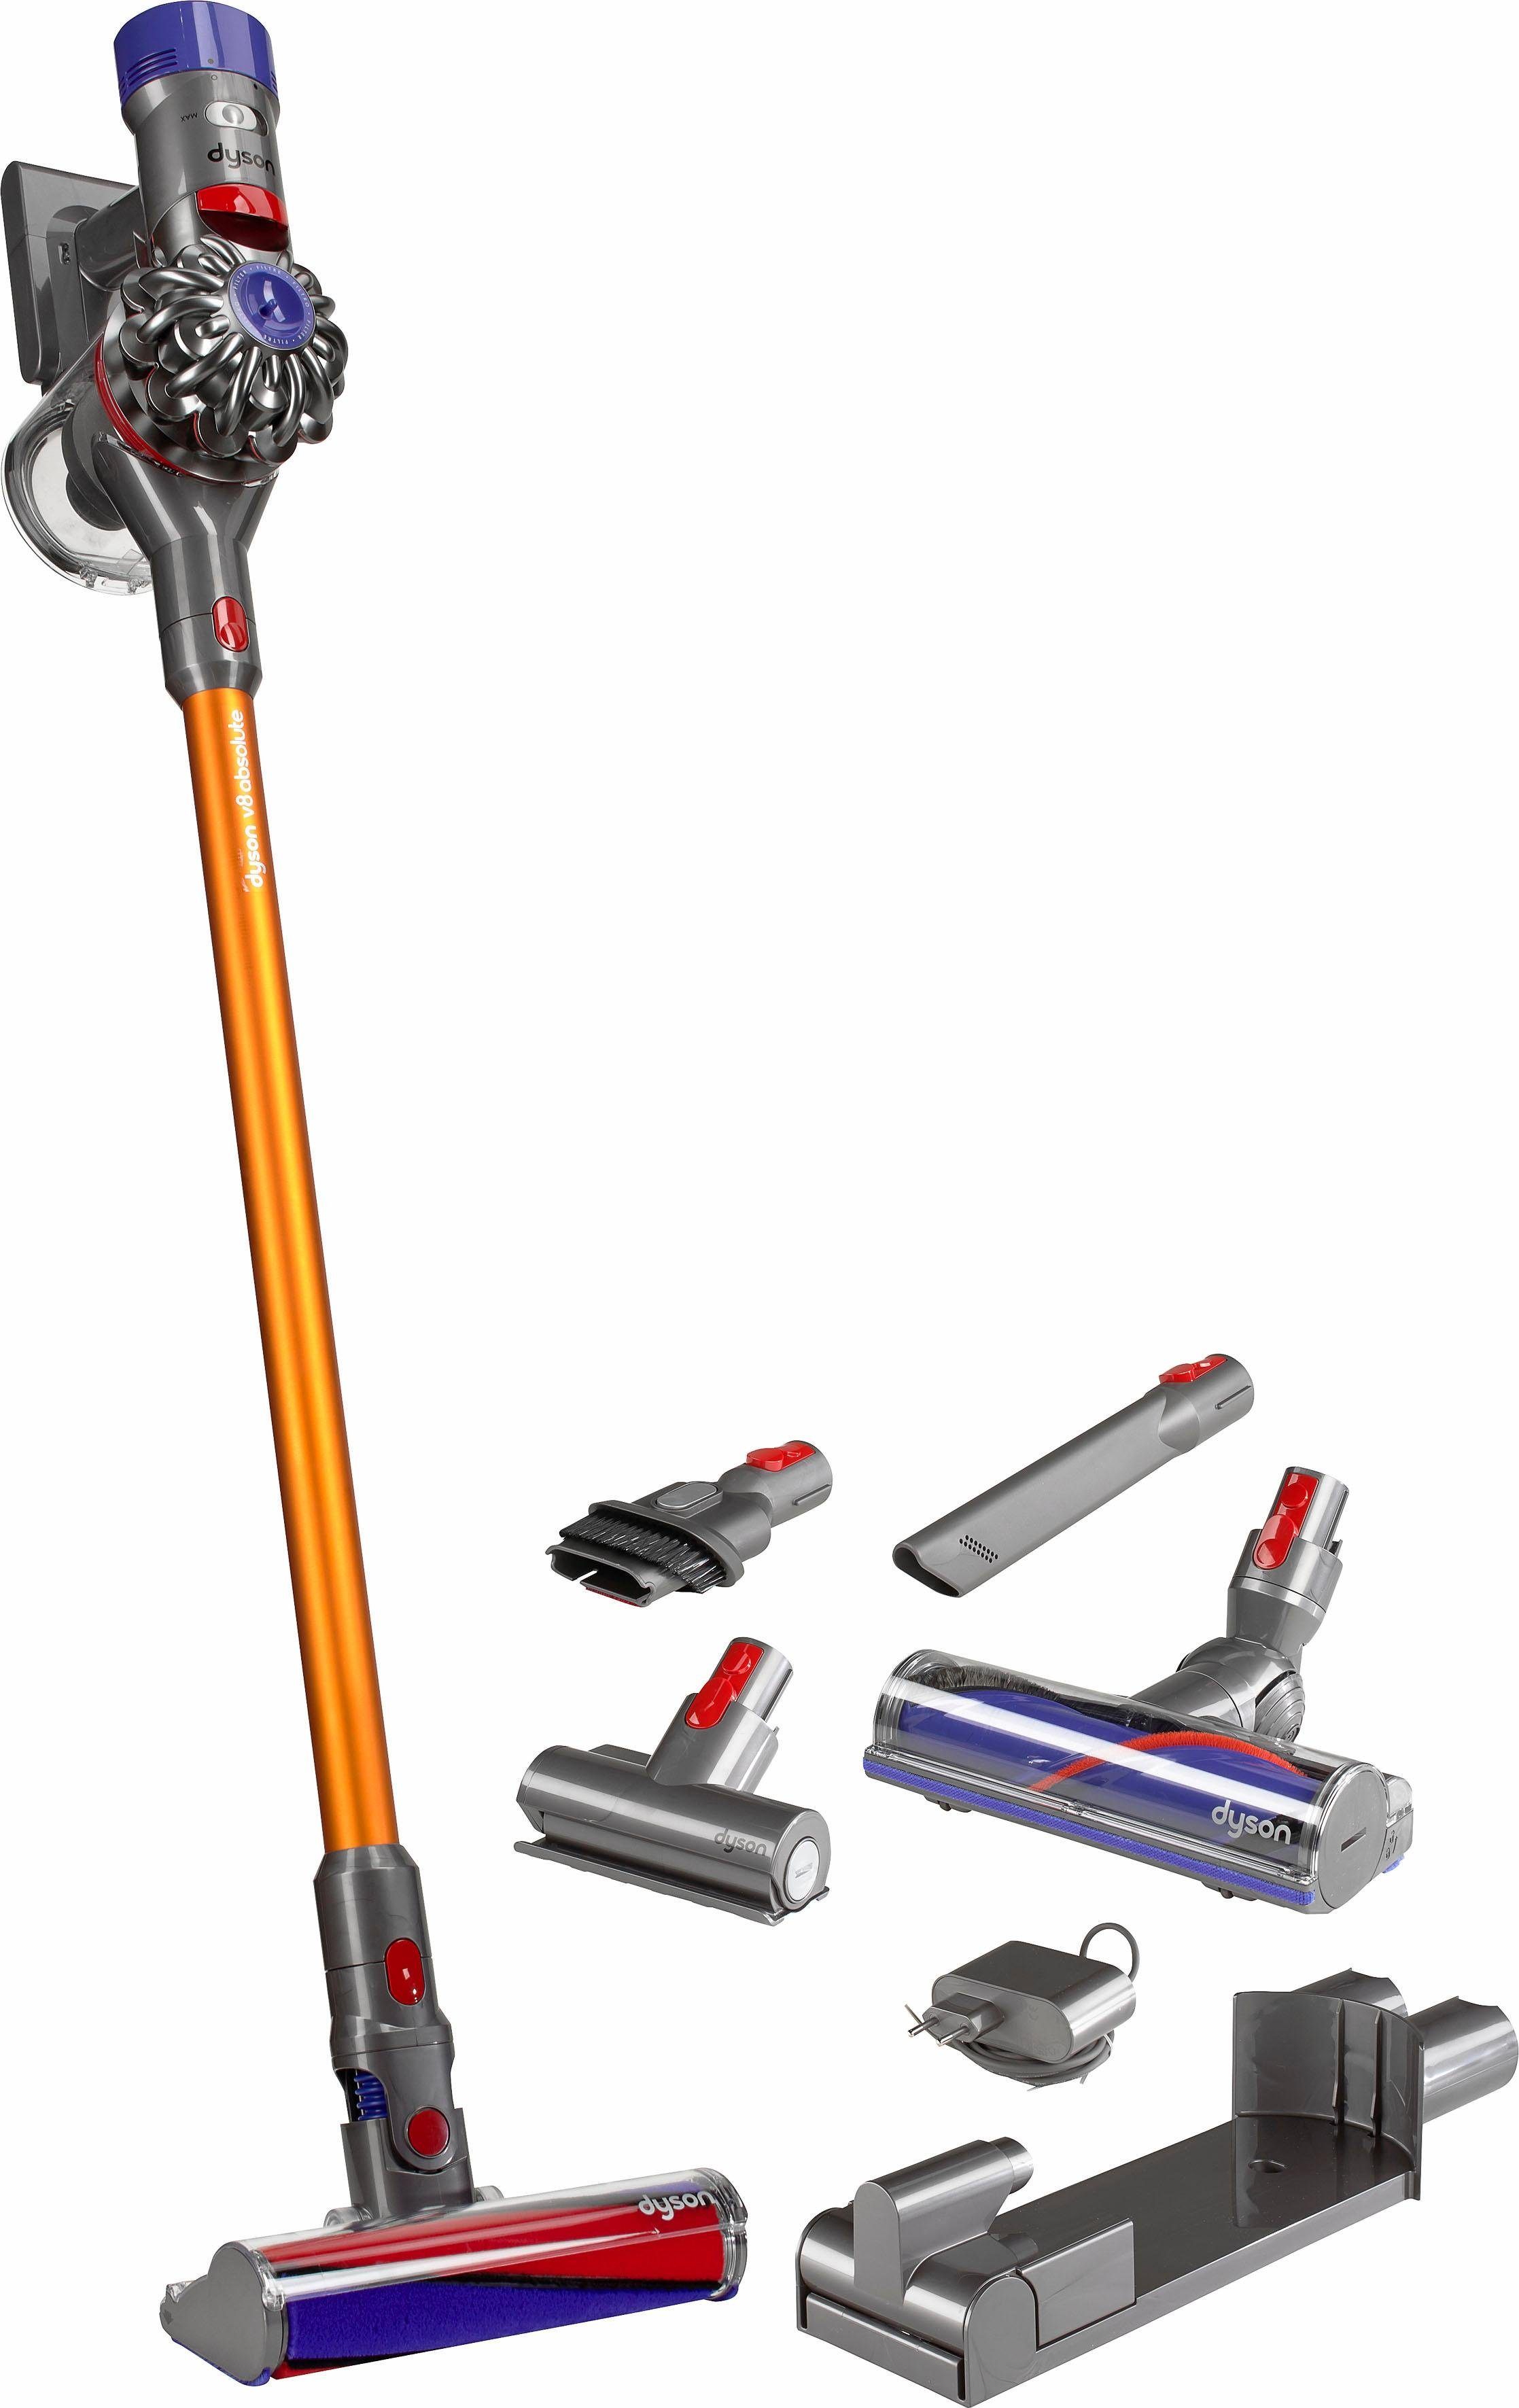 Dyson Akkusauger V8 Absolute, beutellos, gelb-nickel